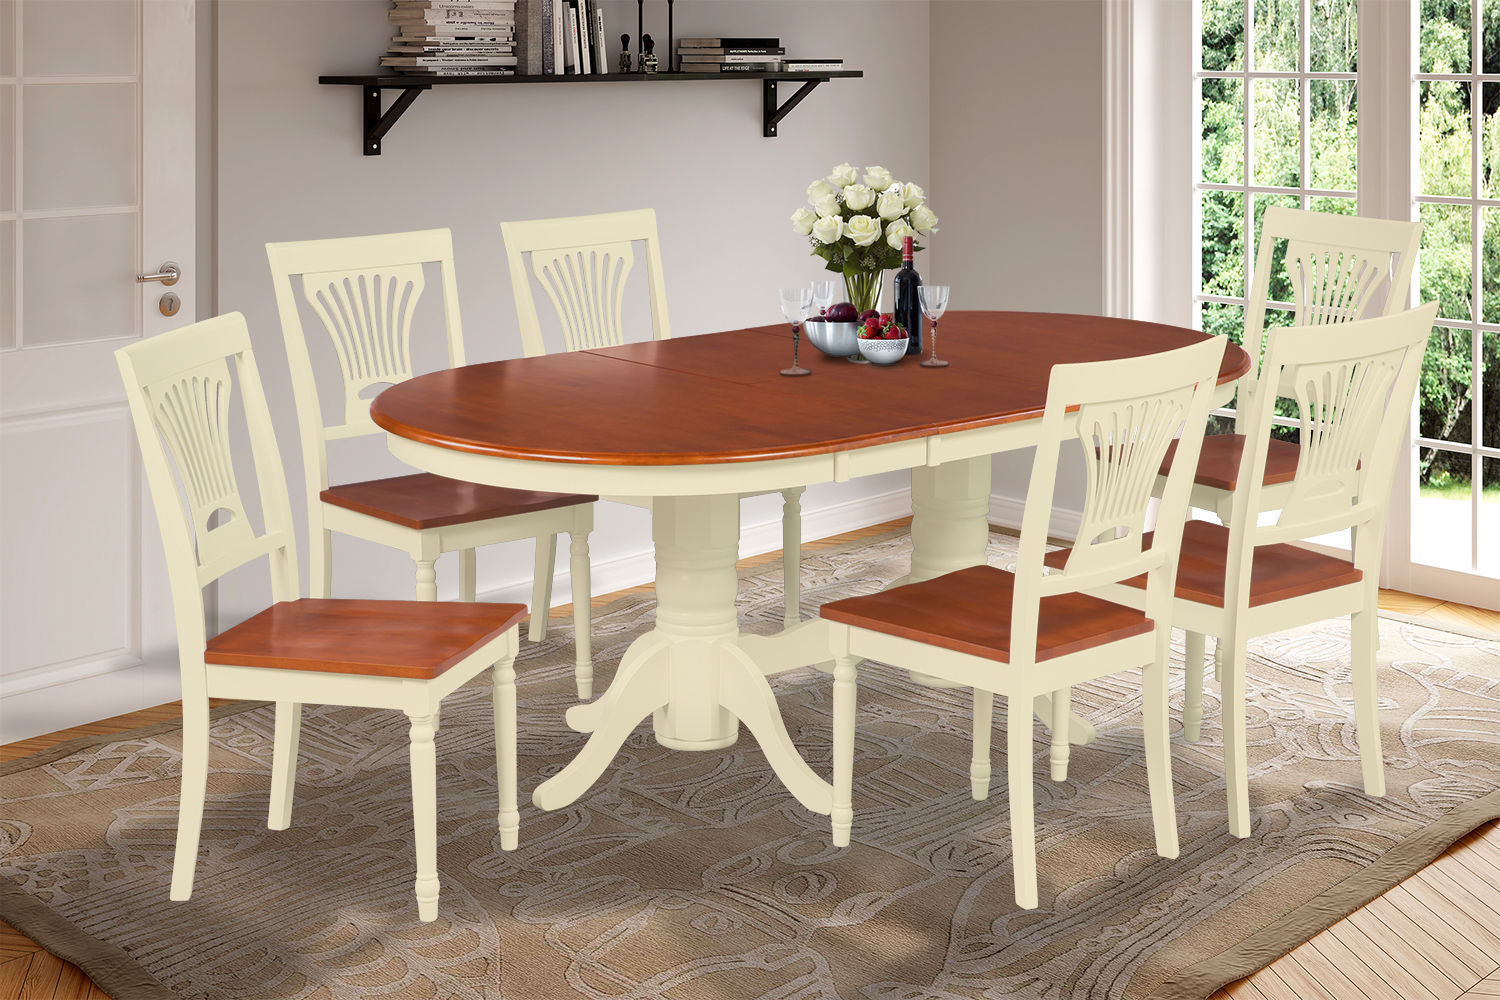 9 PC OVAL DINING ROOM TABLE SET WITH WOODEN CHAIRS IN BUTTERMILK & CHERRY